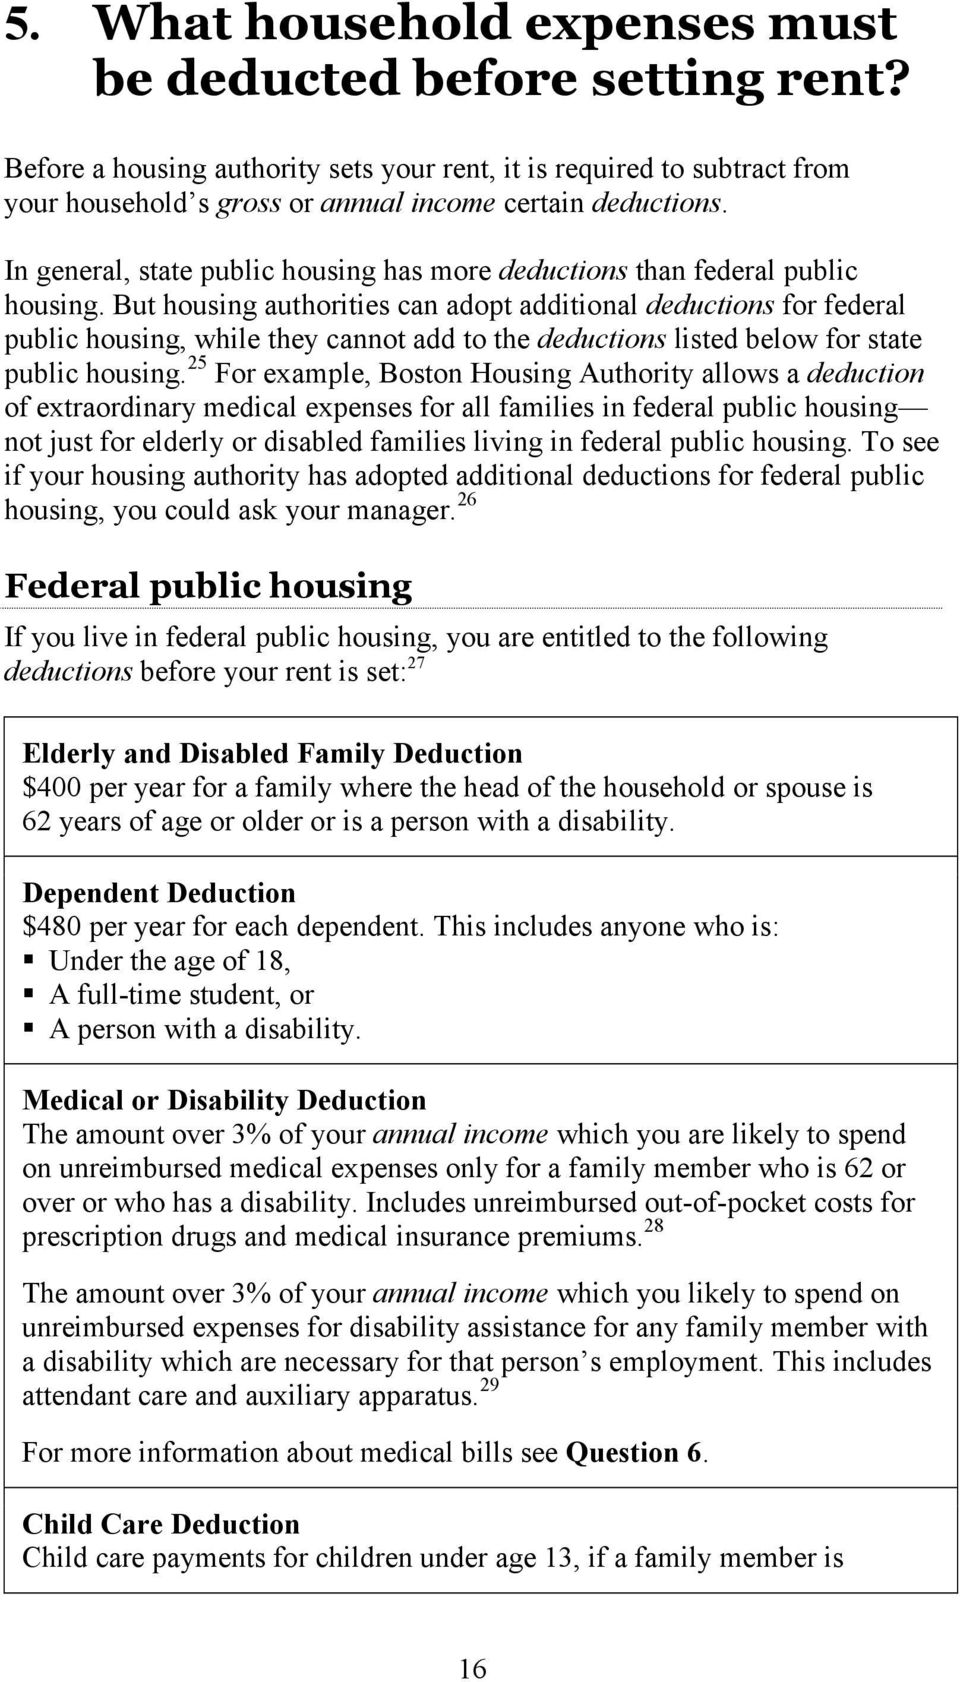 But housing authorities can adopt additional deductions for federal public housing, while they cannot add to the deductions listed below for state public housing.